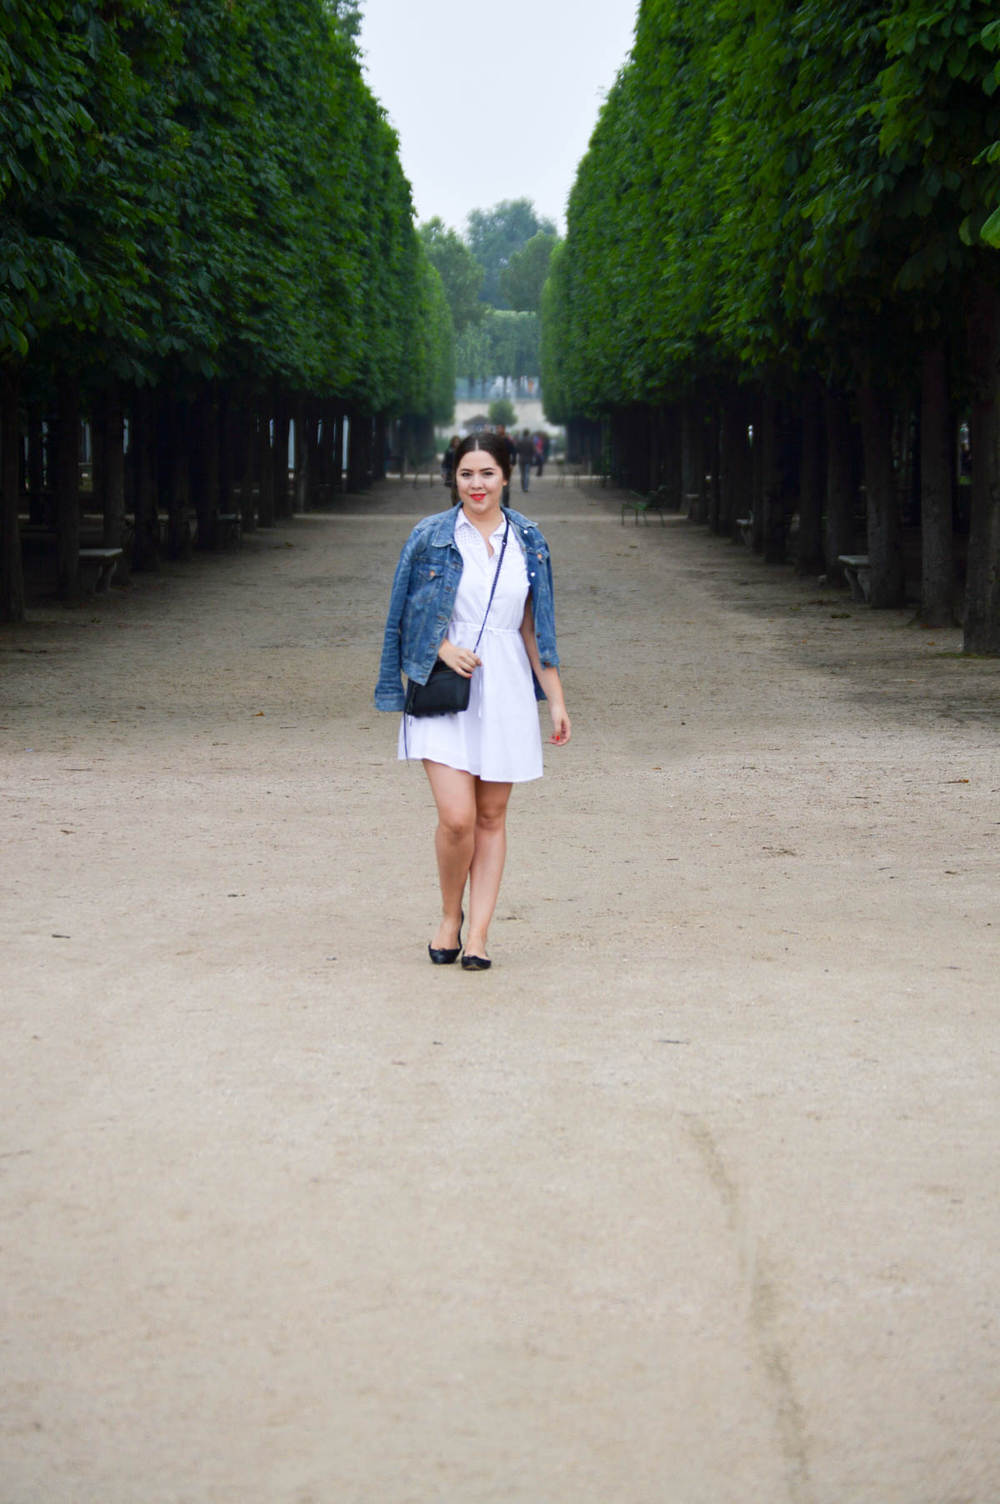 jardin du louvre Paris blogger attire via